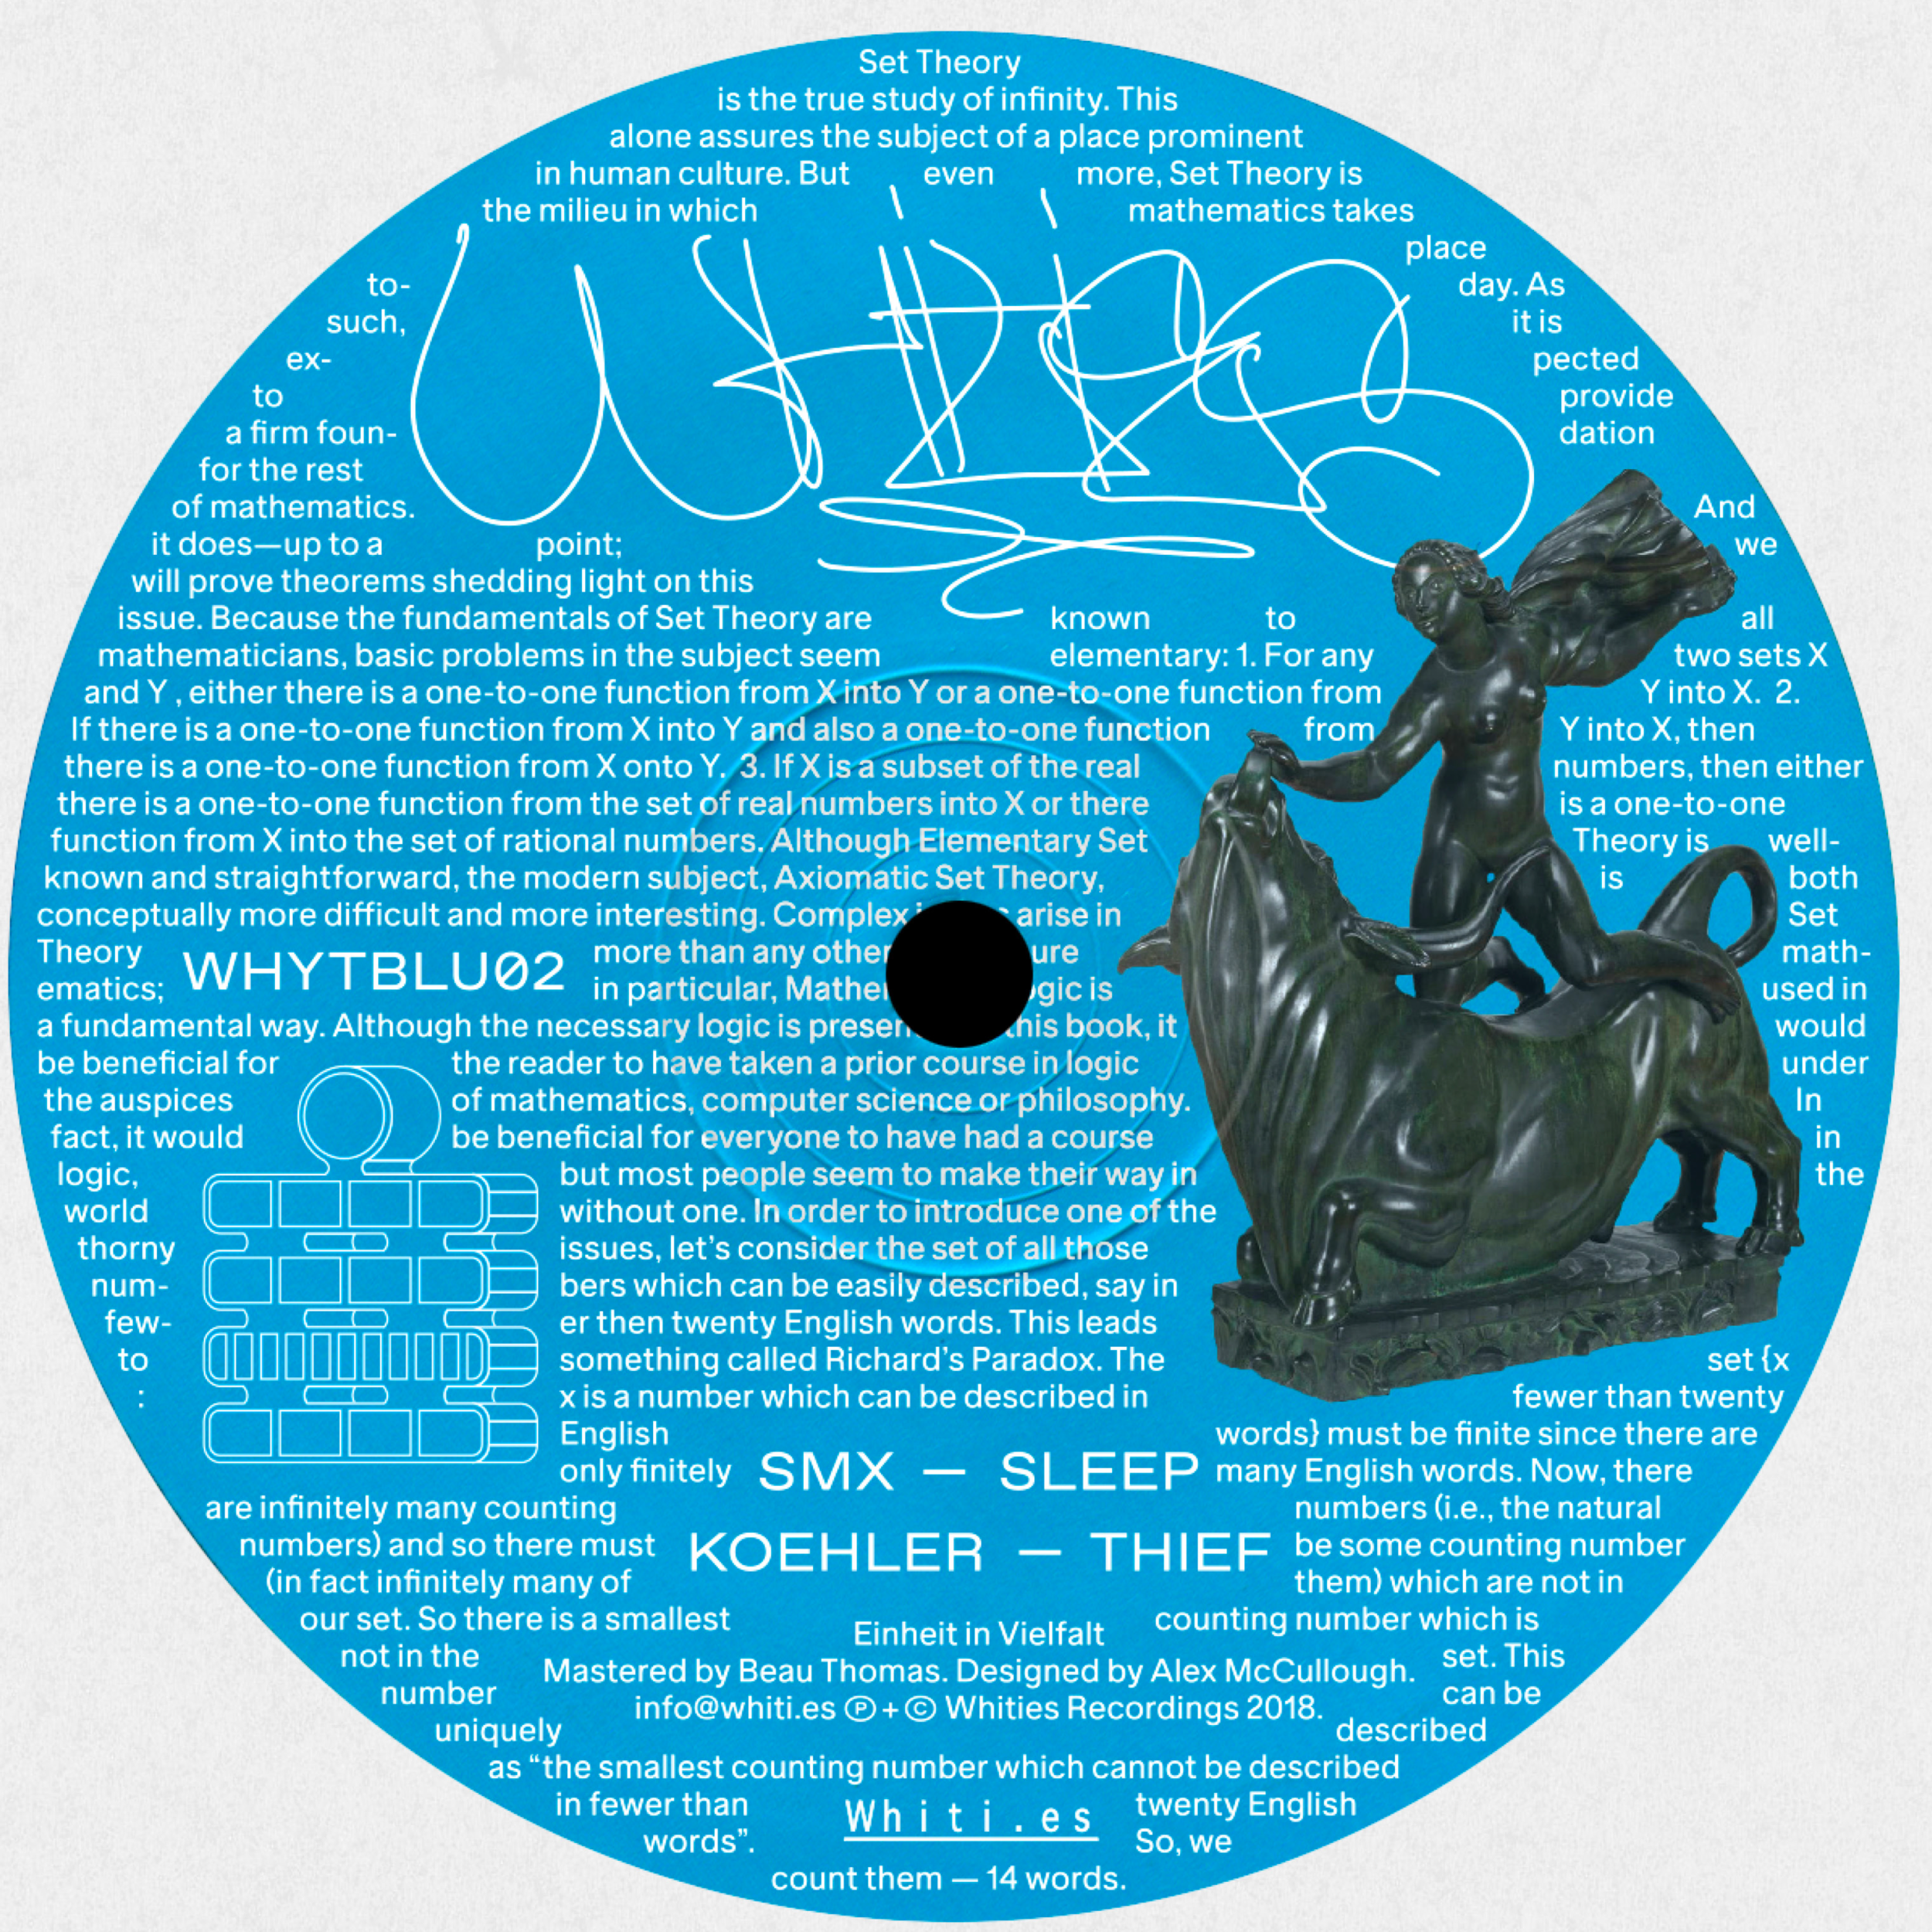 whiteies-record-label-label-focus.png